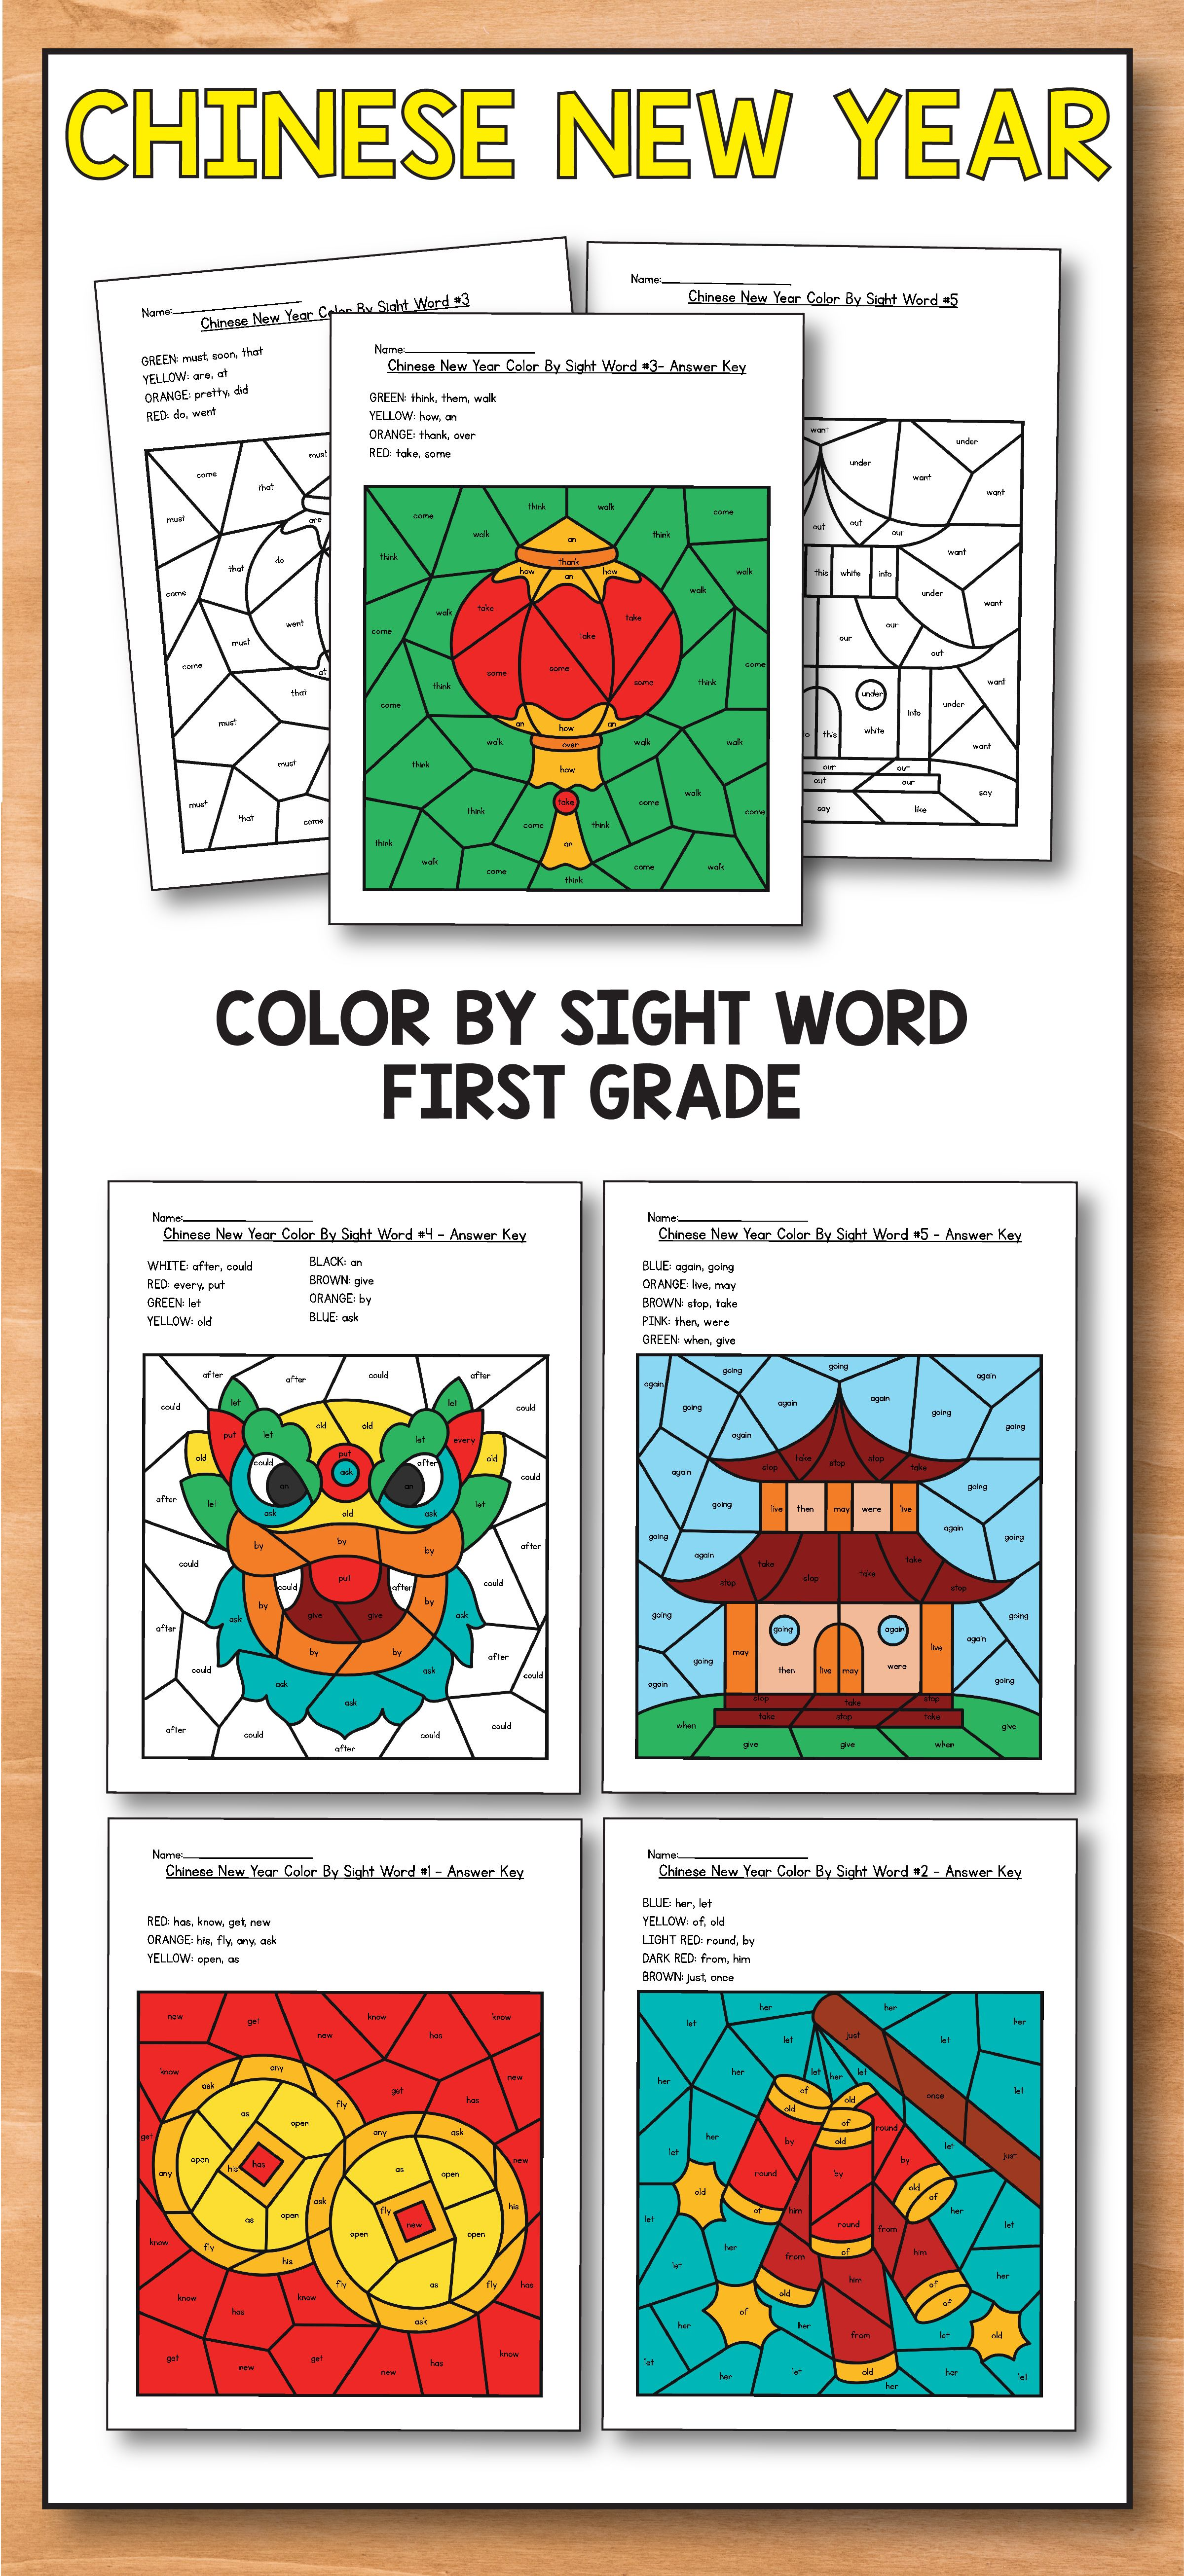 Chinese New Year Activities Chinese New Year Coloring